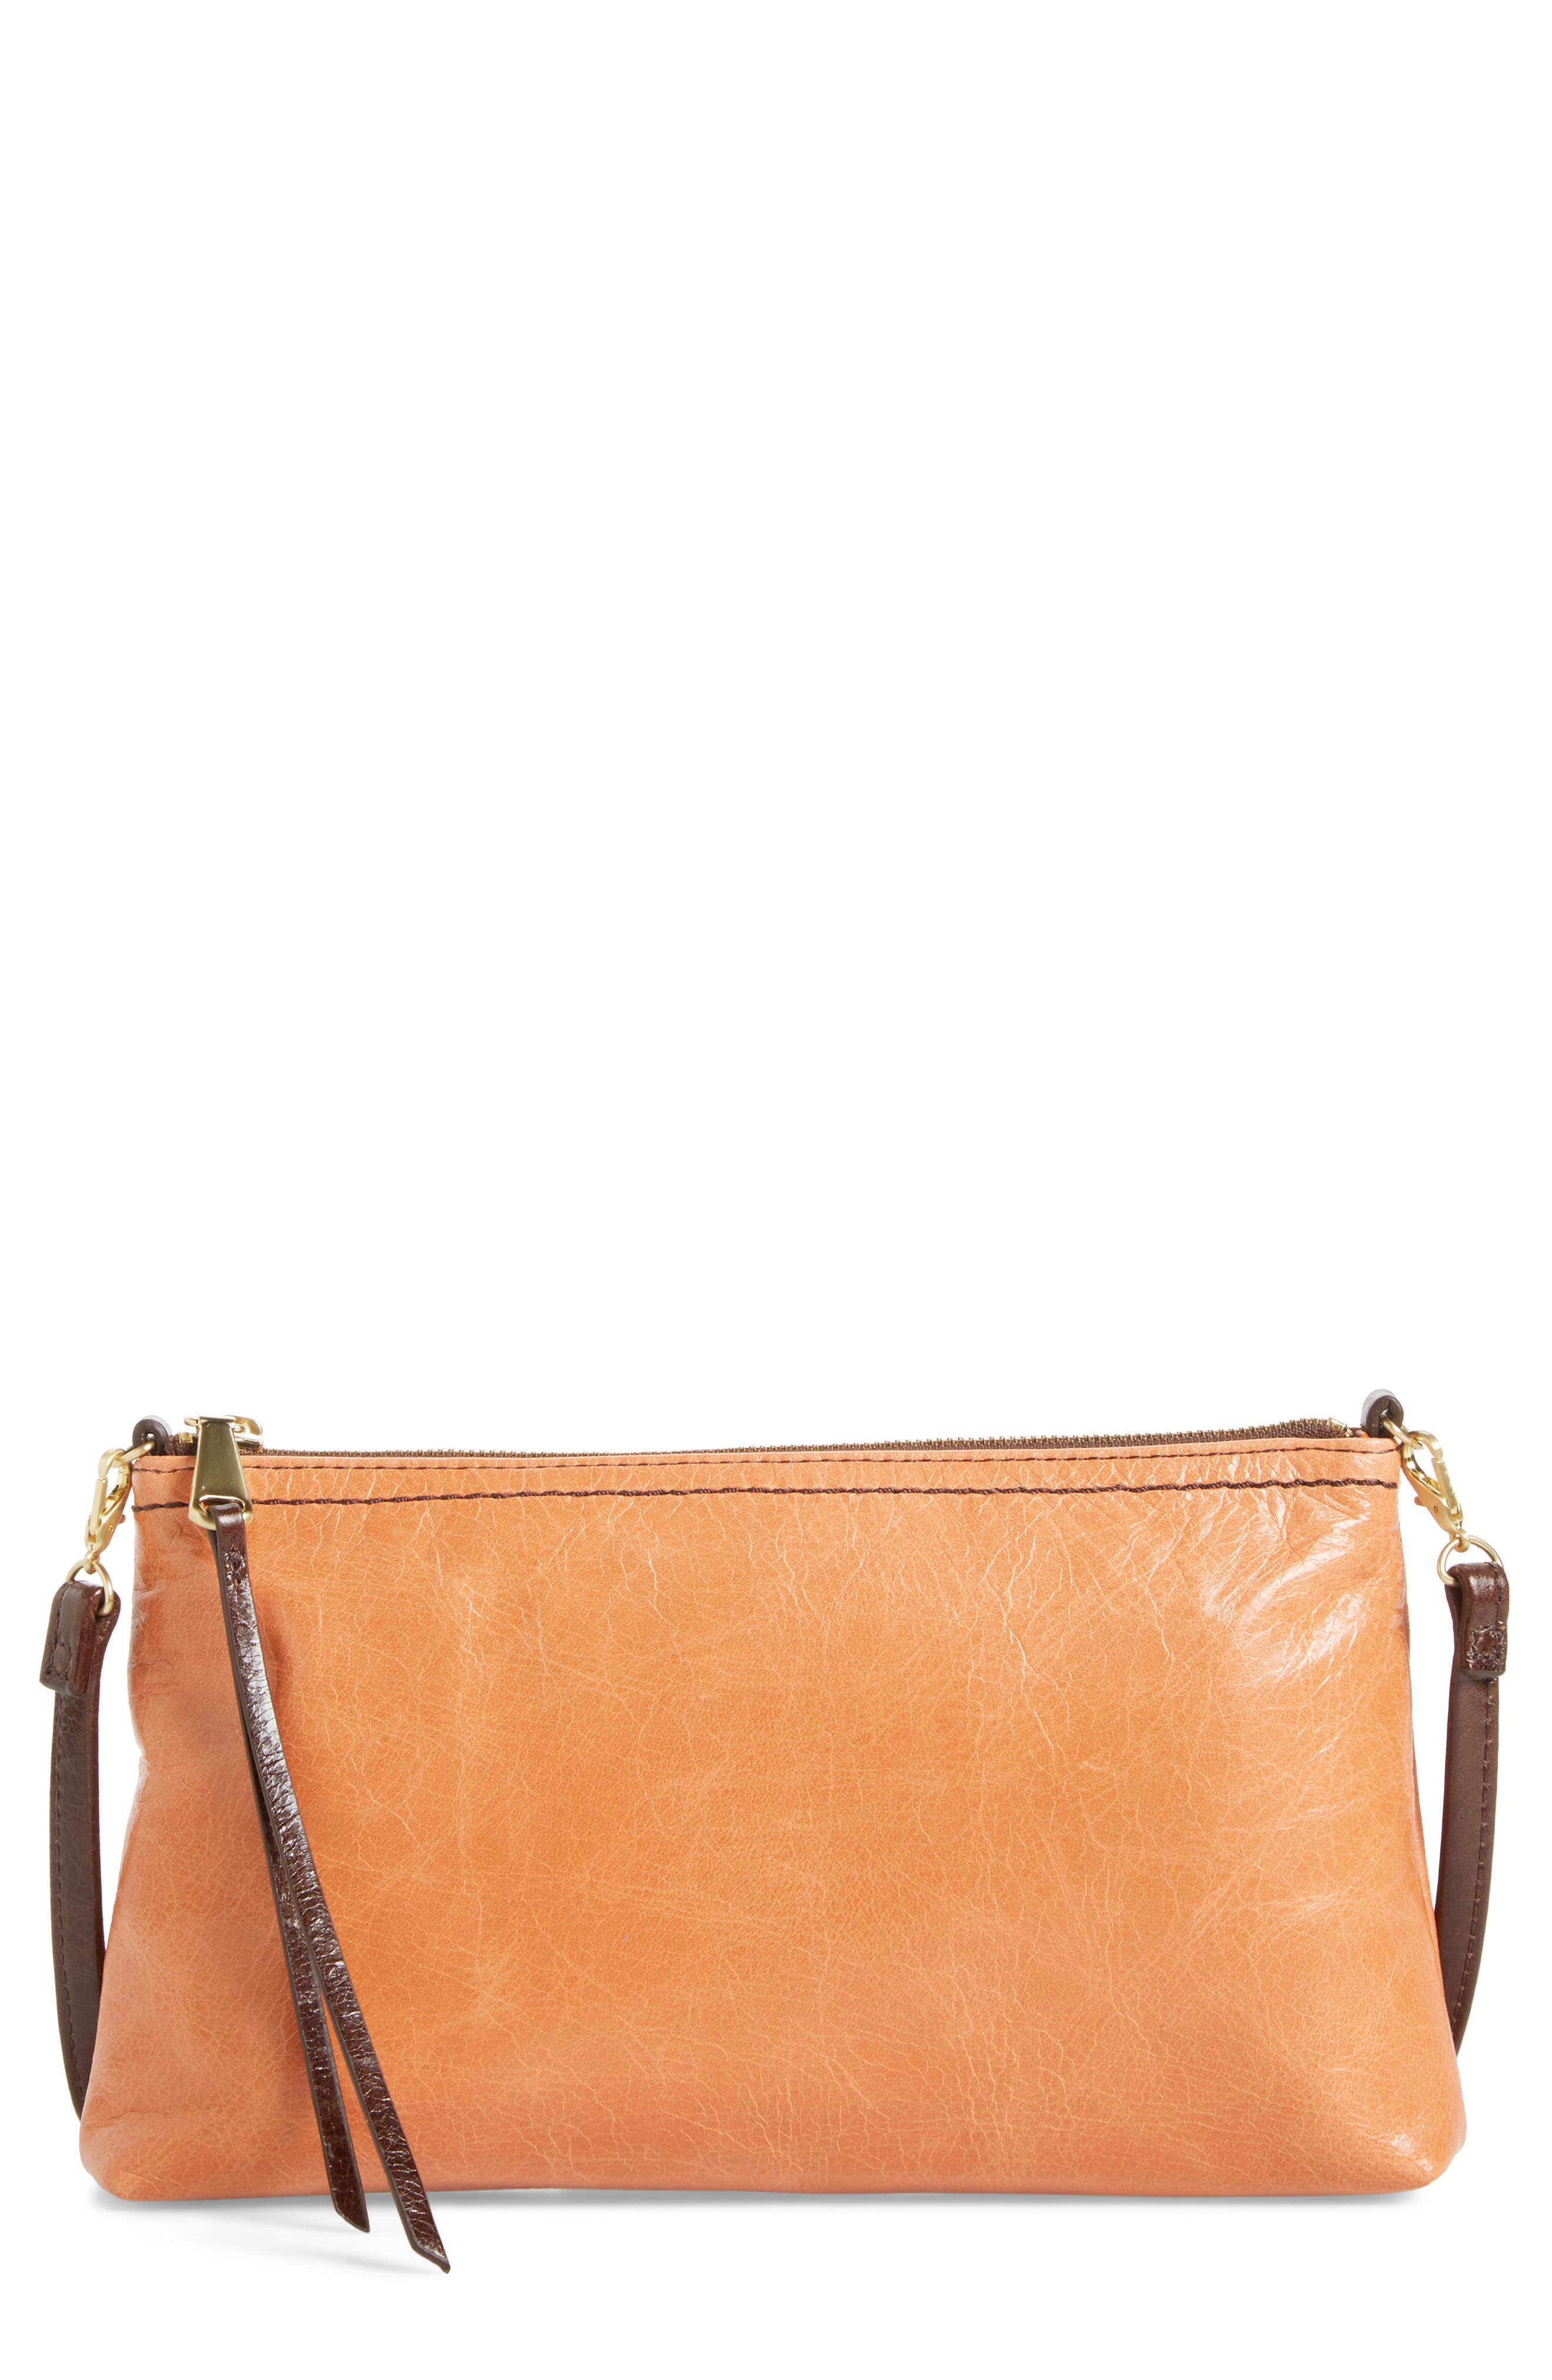 'Darcy' Leather Crossbody Bag,                             Main thumbnail 31, color,